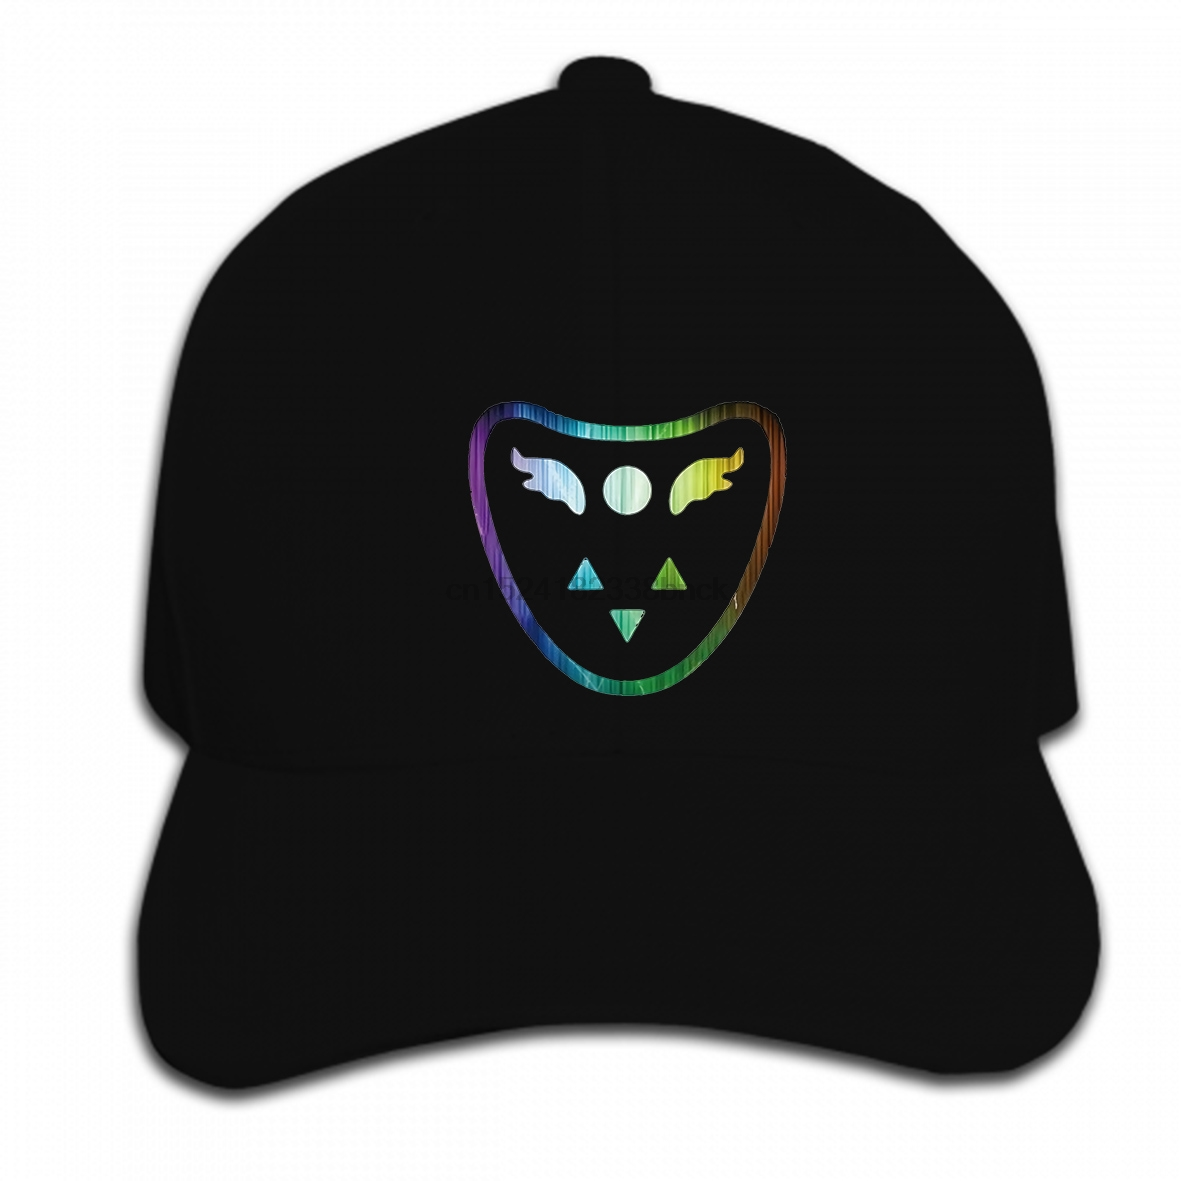 8d92a582c Buy undertale cap and get free shipping on AliExpress.com